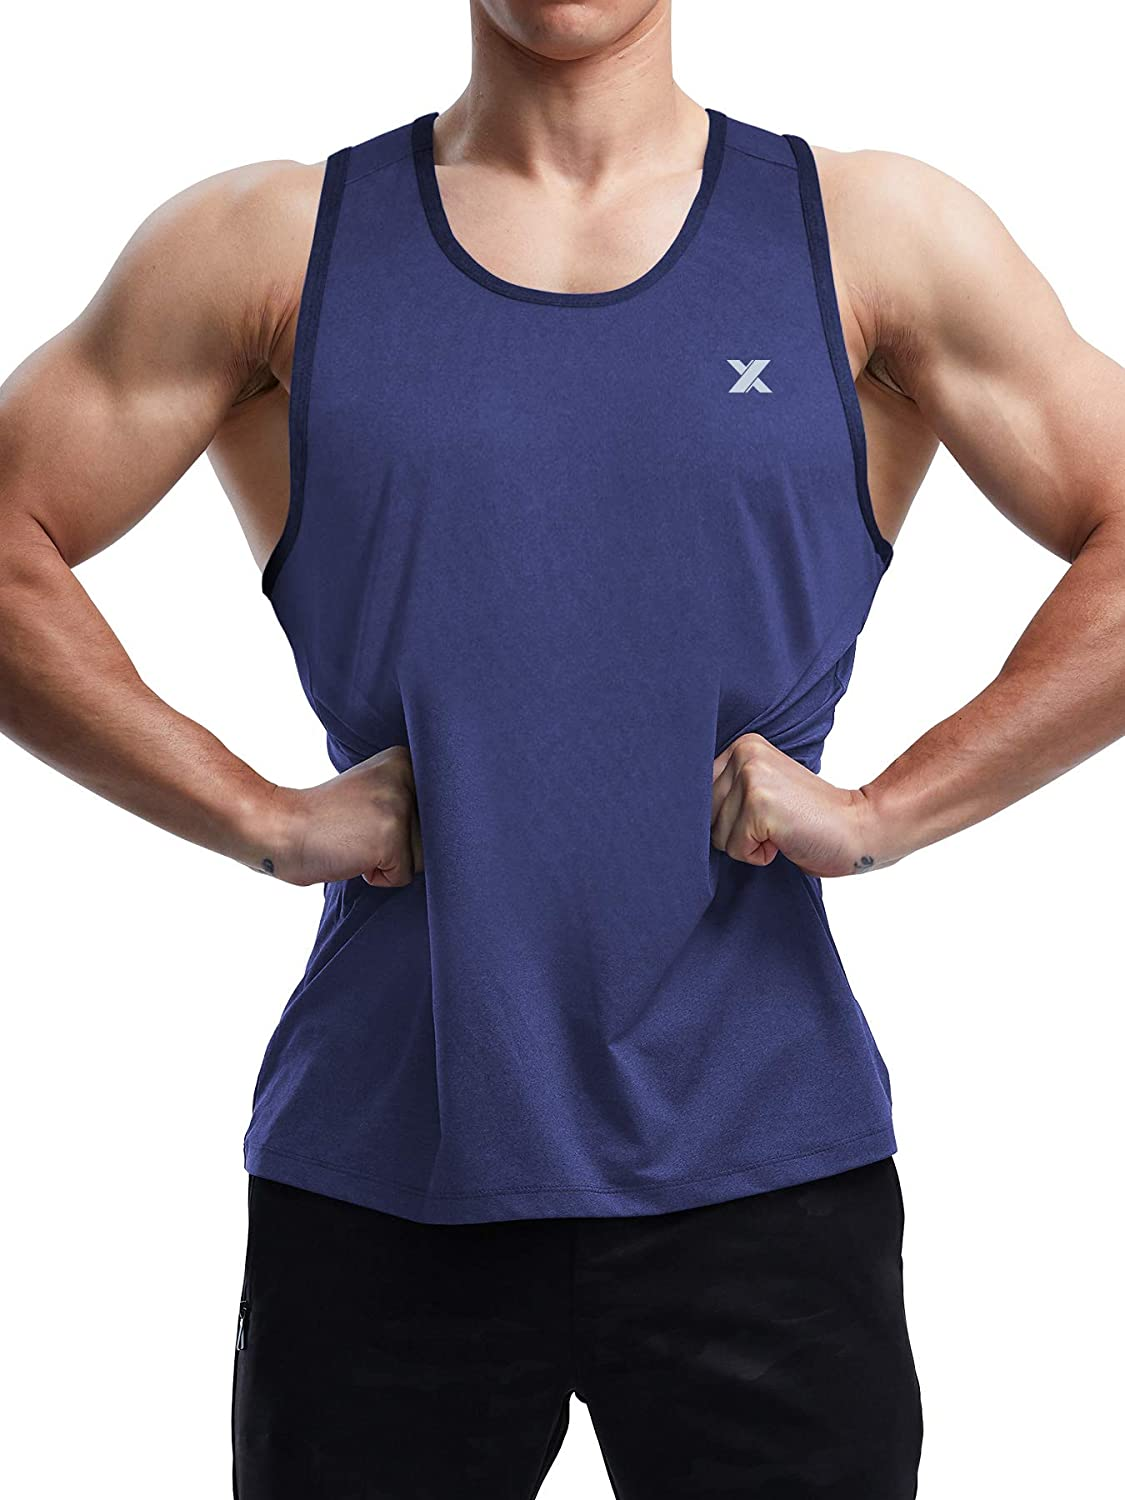 Xtansuo Mens Quick Dry Workout Muscle Tank Top Sleeveless Sport T Shirt for Gym Fitness Bodybuilding Athletic Training